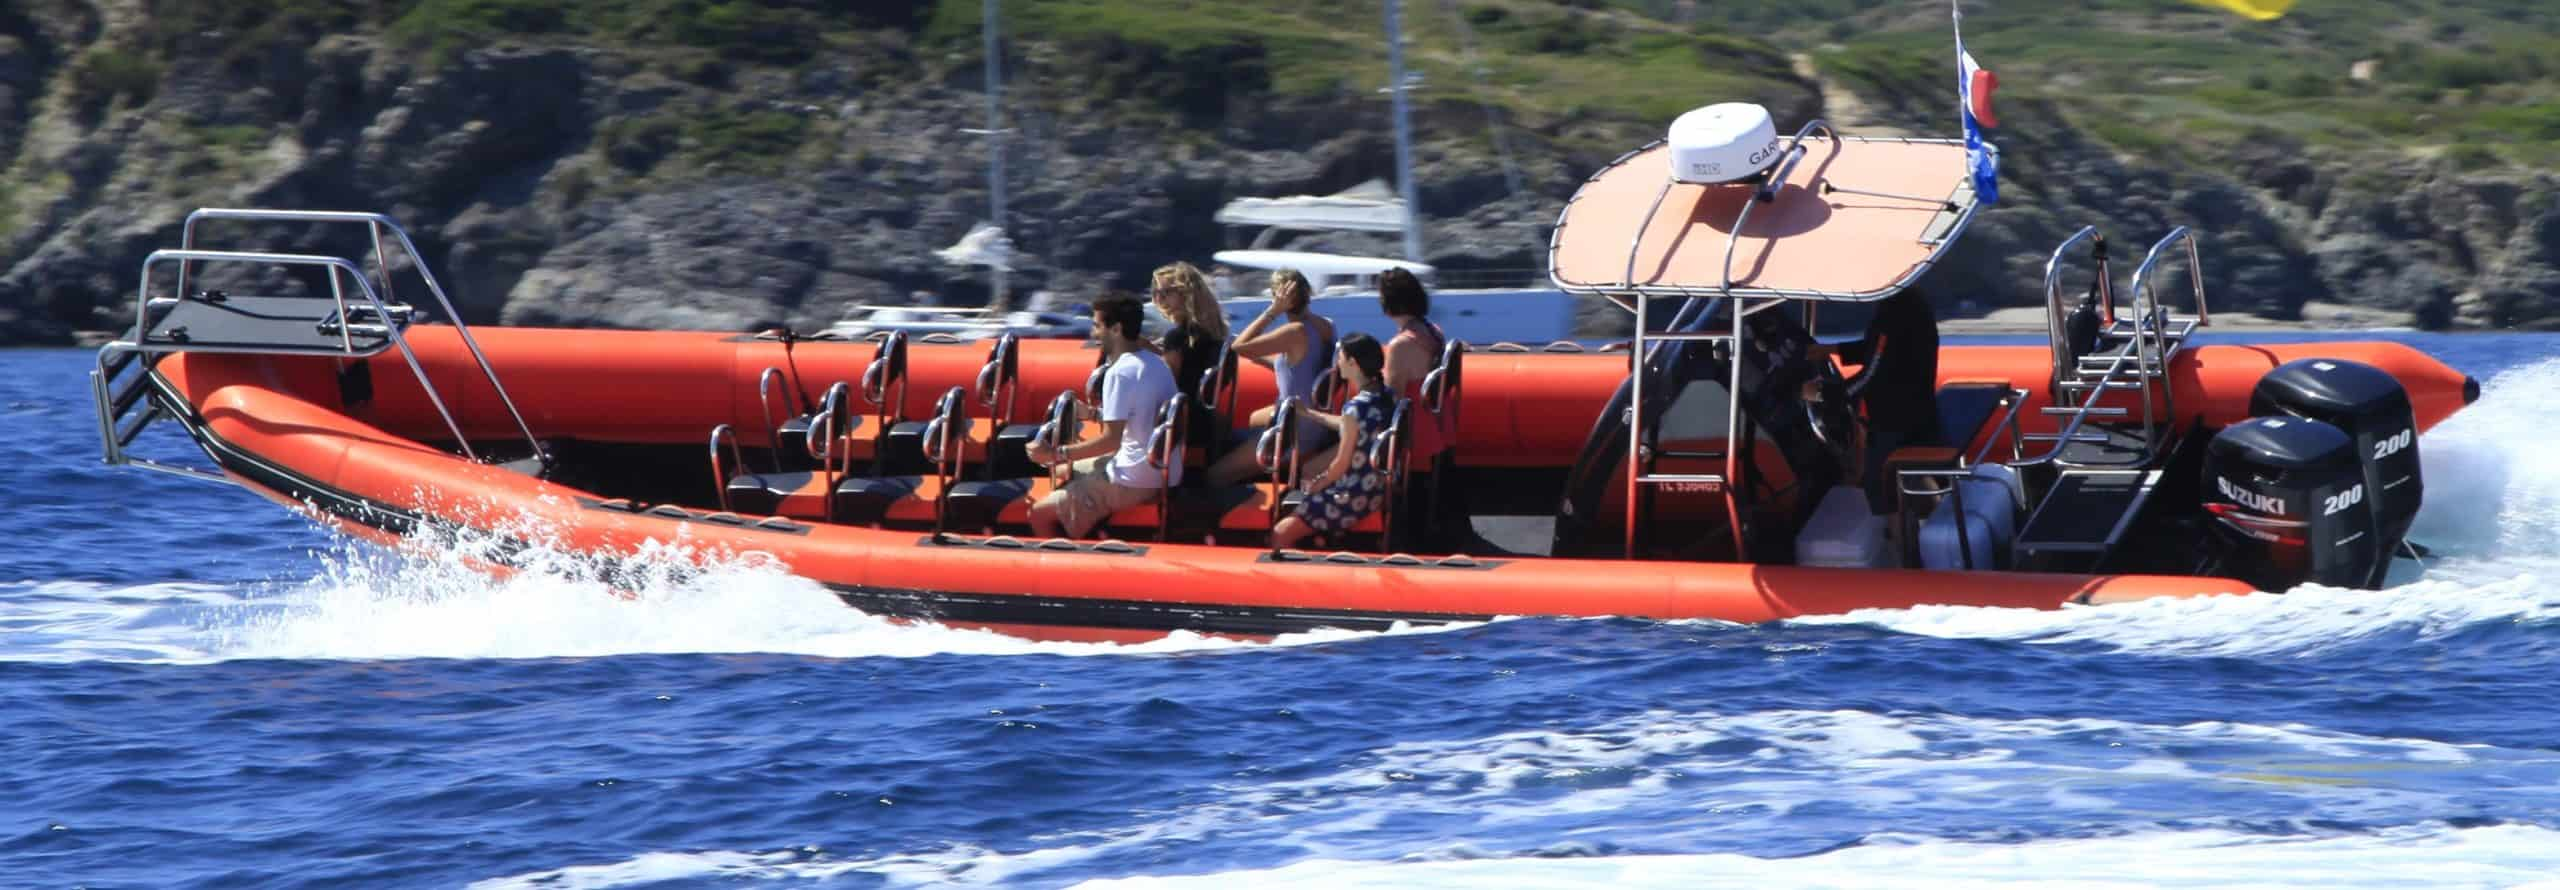 Whale watching Friday 24 september